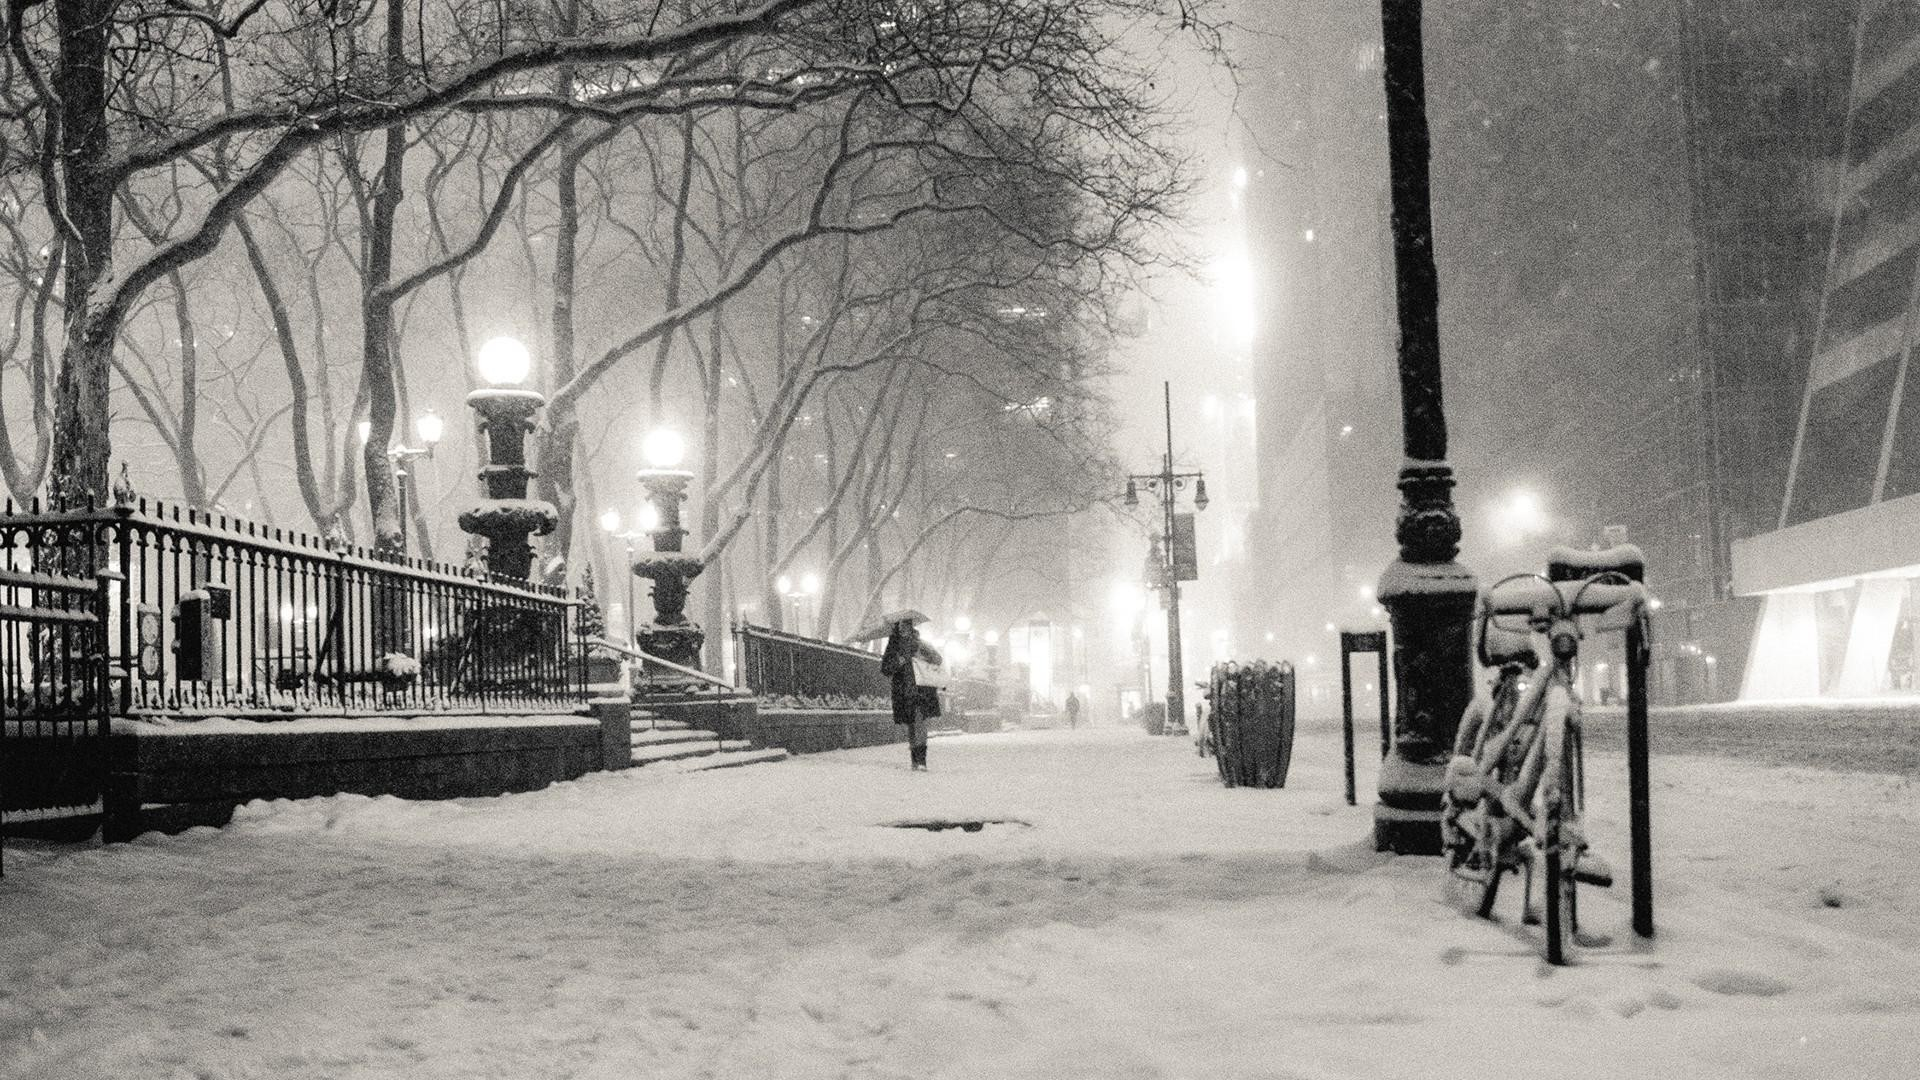 New York city in black and white wallpaper.